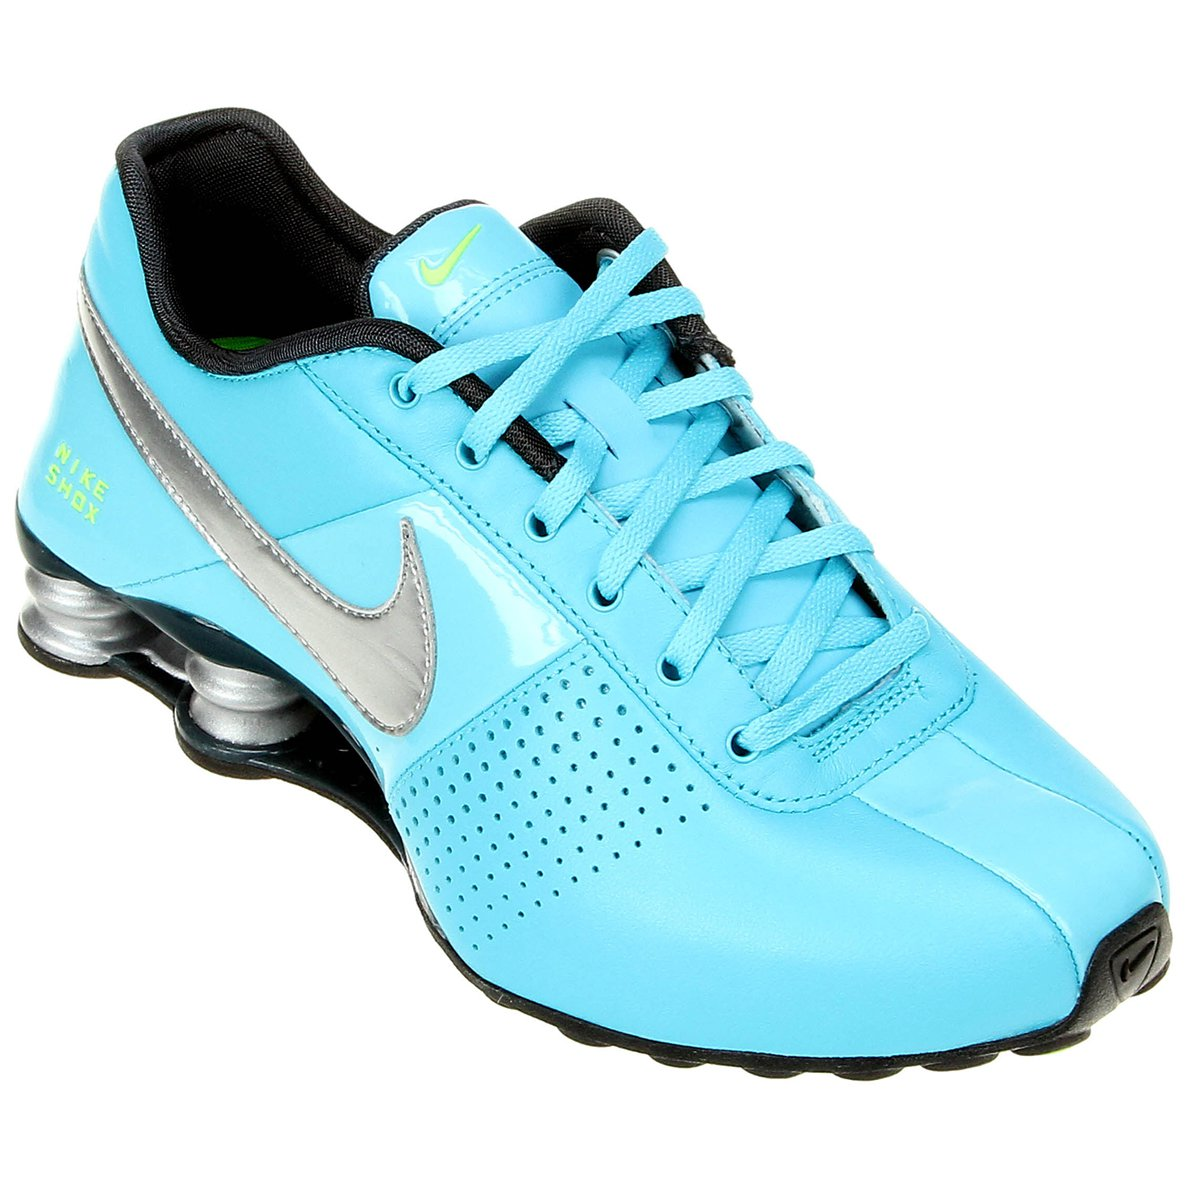 1b0f9749196 ... cheapest tênis nike shox deliver azul piscina 89387 7ccdf